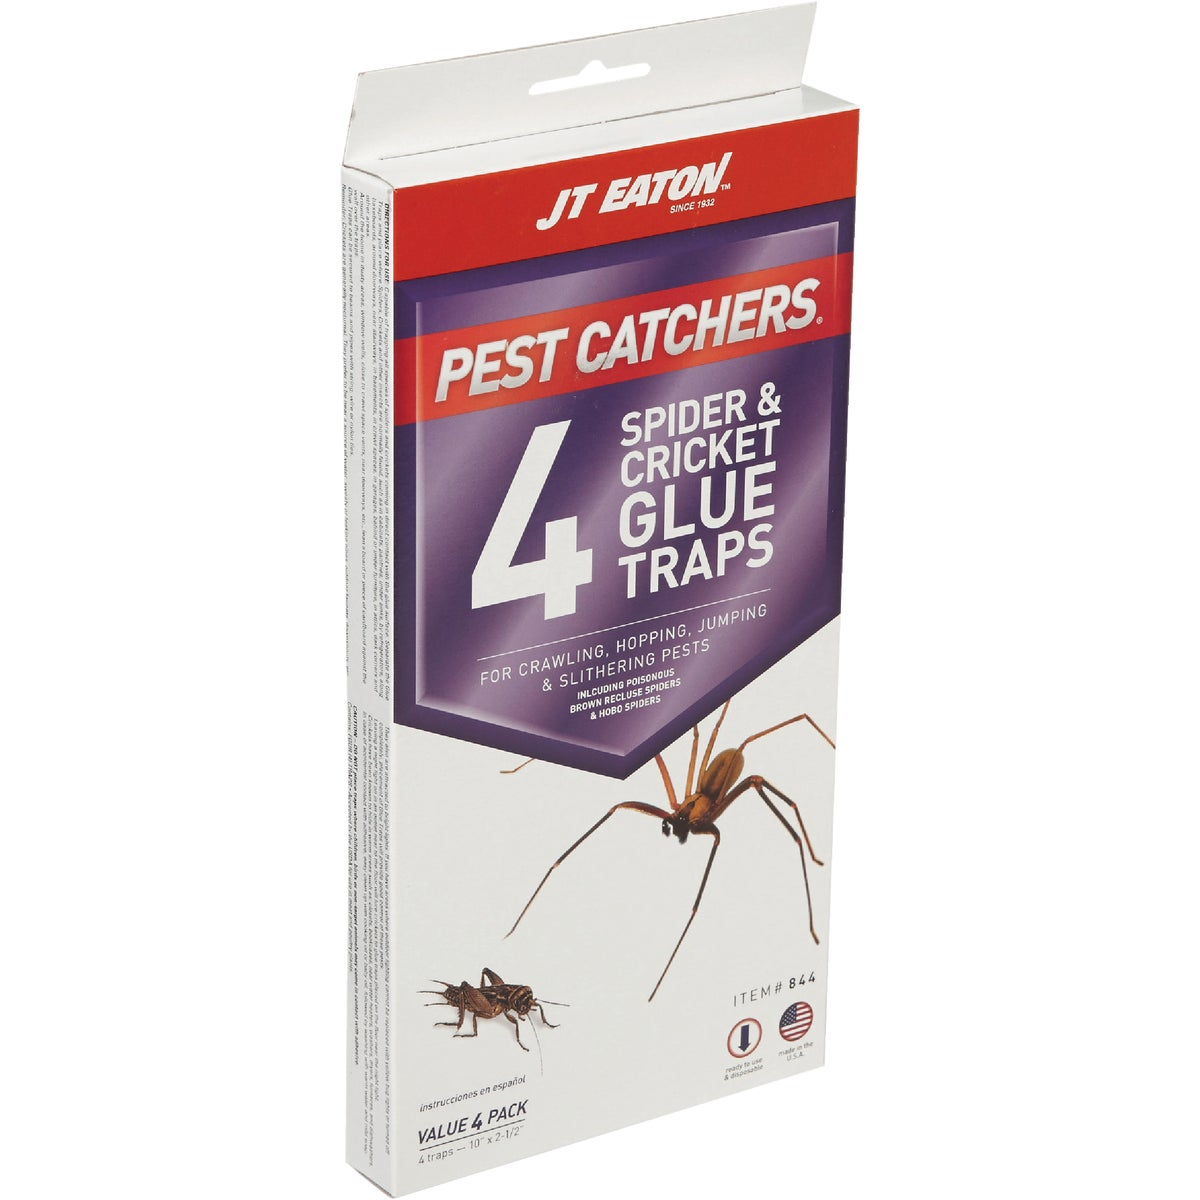 JT Eaton Pest Catchers Indoor Glue Cricket & Spider Trap (4-Pack)